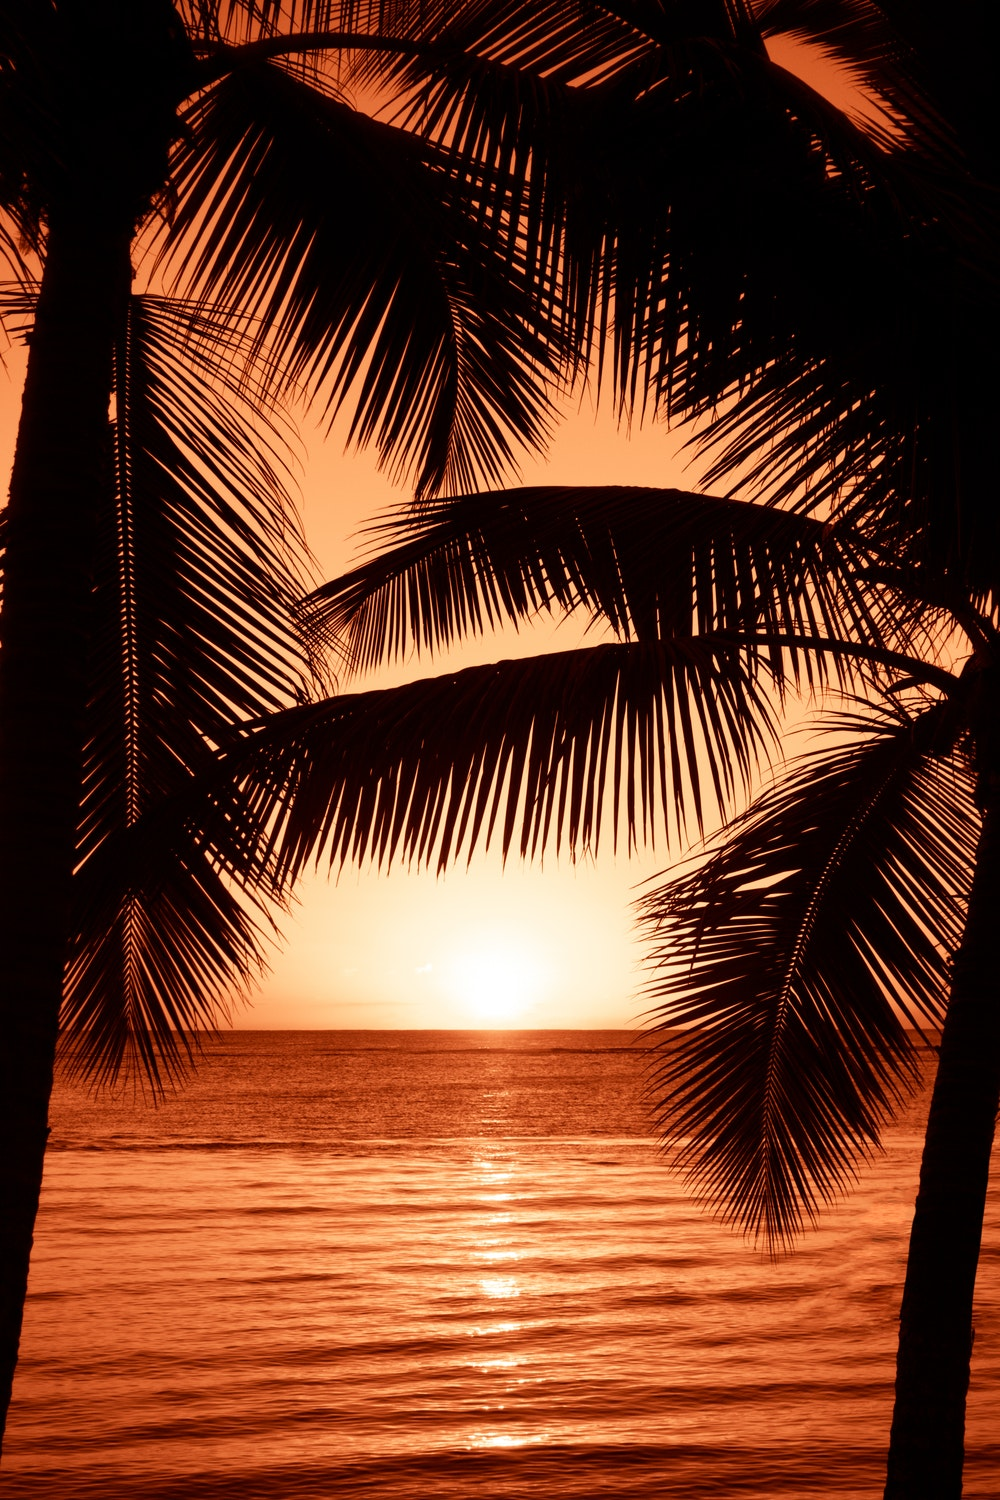 Free Wallpaper - Sunset With Palm Trees Painting , HD Wallpaper & Backgrounds